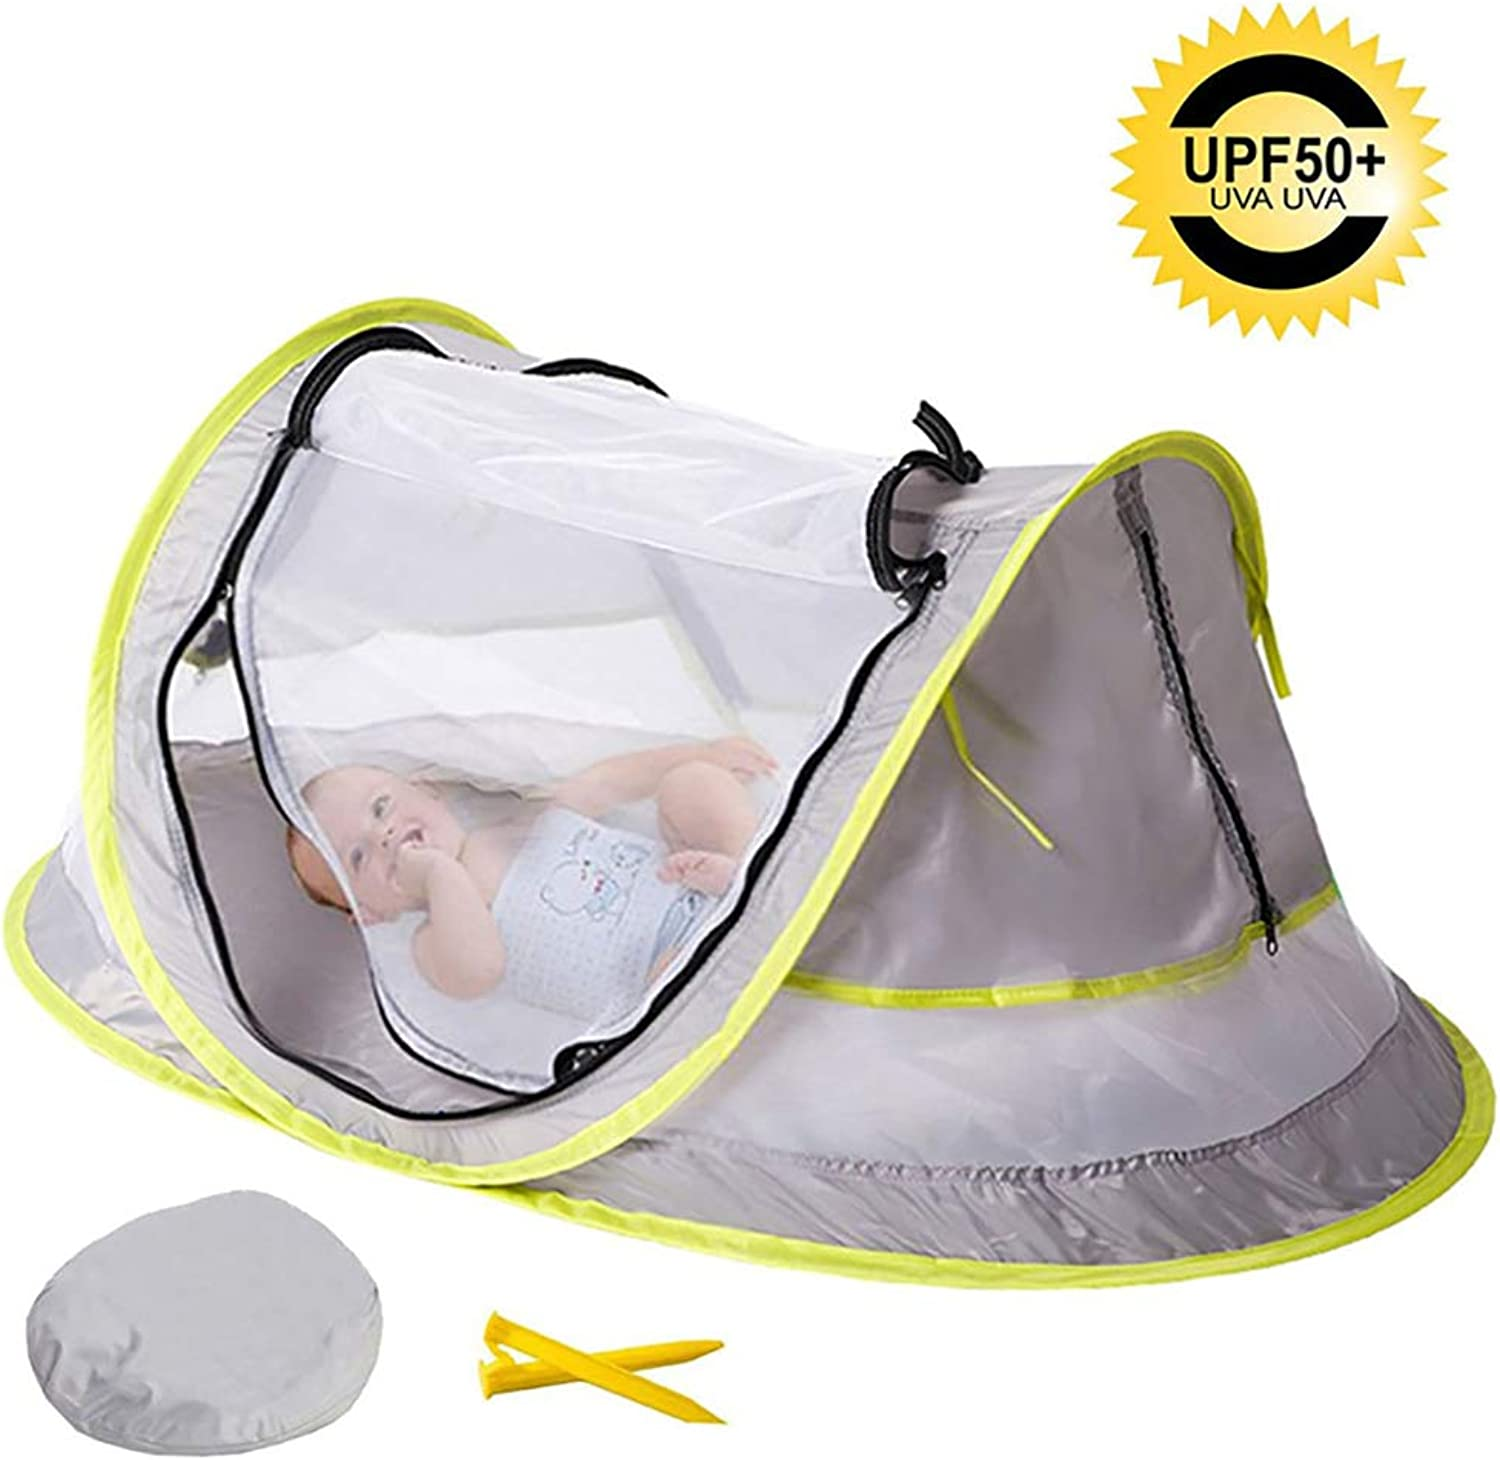 Baby Beach Tent, Portable Infant Pop Up UV Sun Predection Tent with Storage Bag, Breathable Travel Mosquito Net Bed with Mesh Windows and 2 Pegs